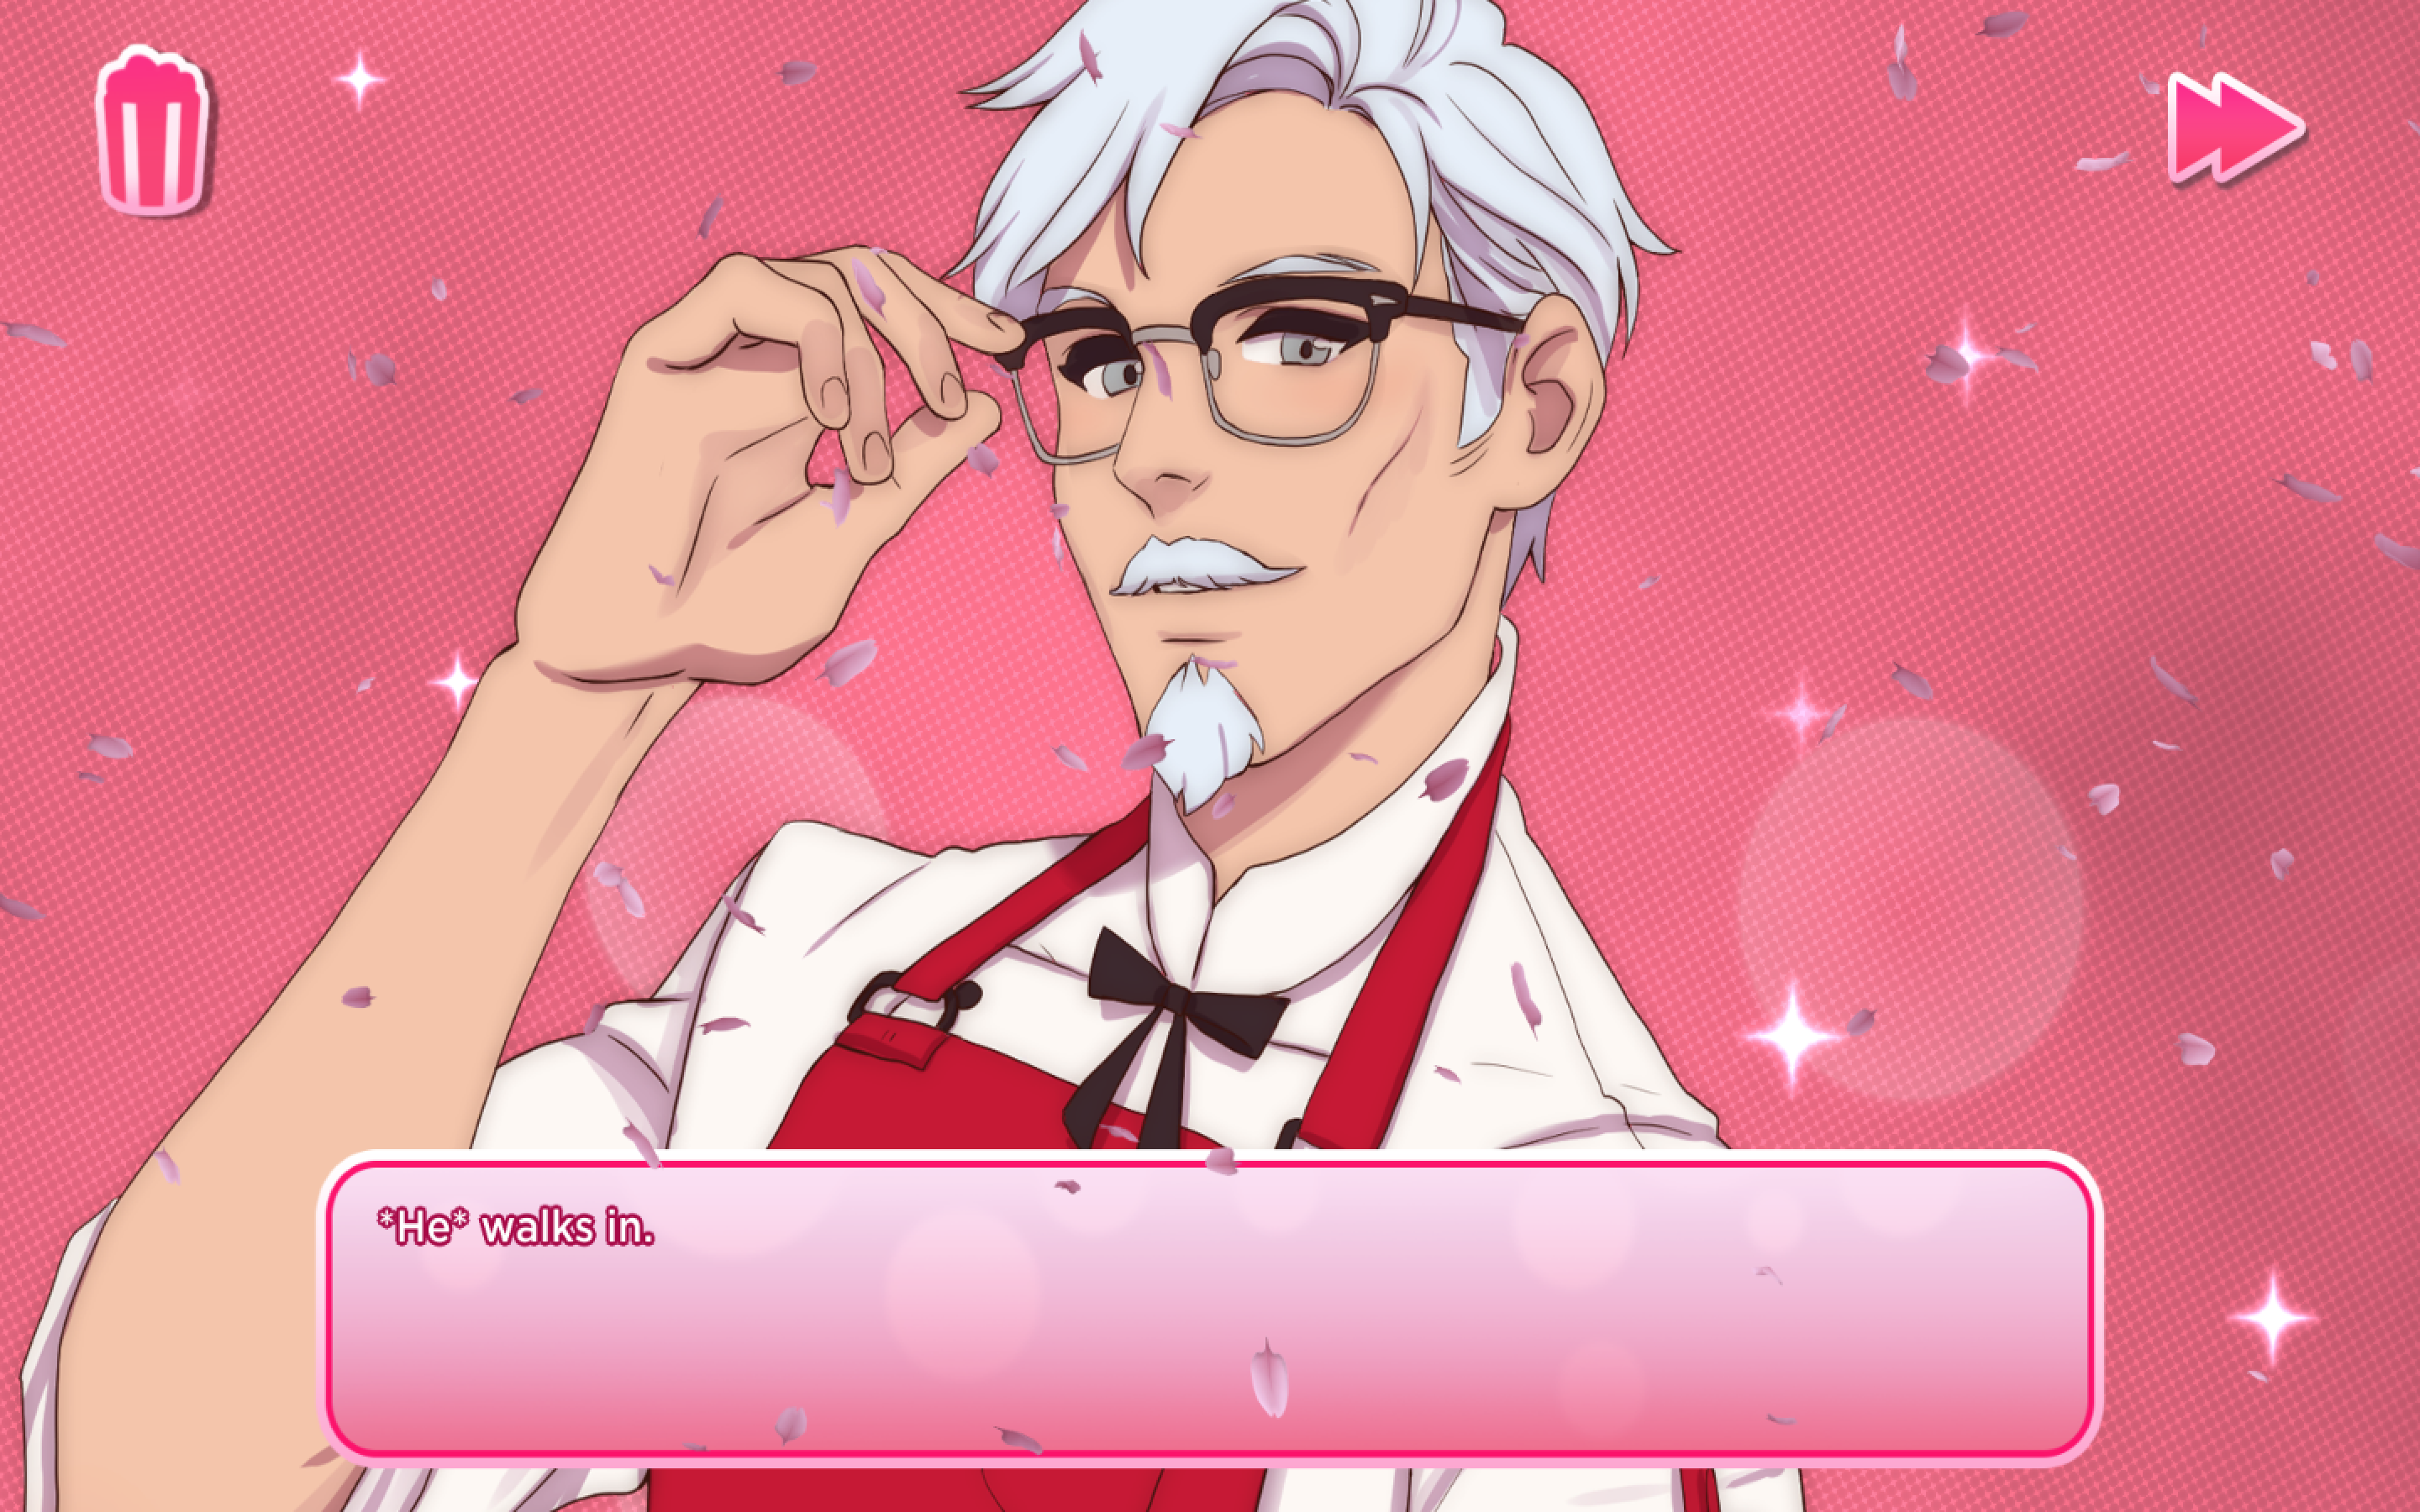 Anime Colonel Sanders looking single and ready to mingle.